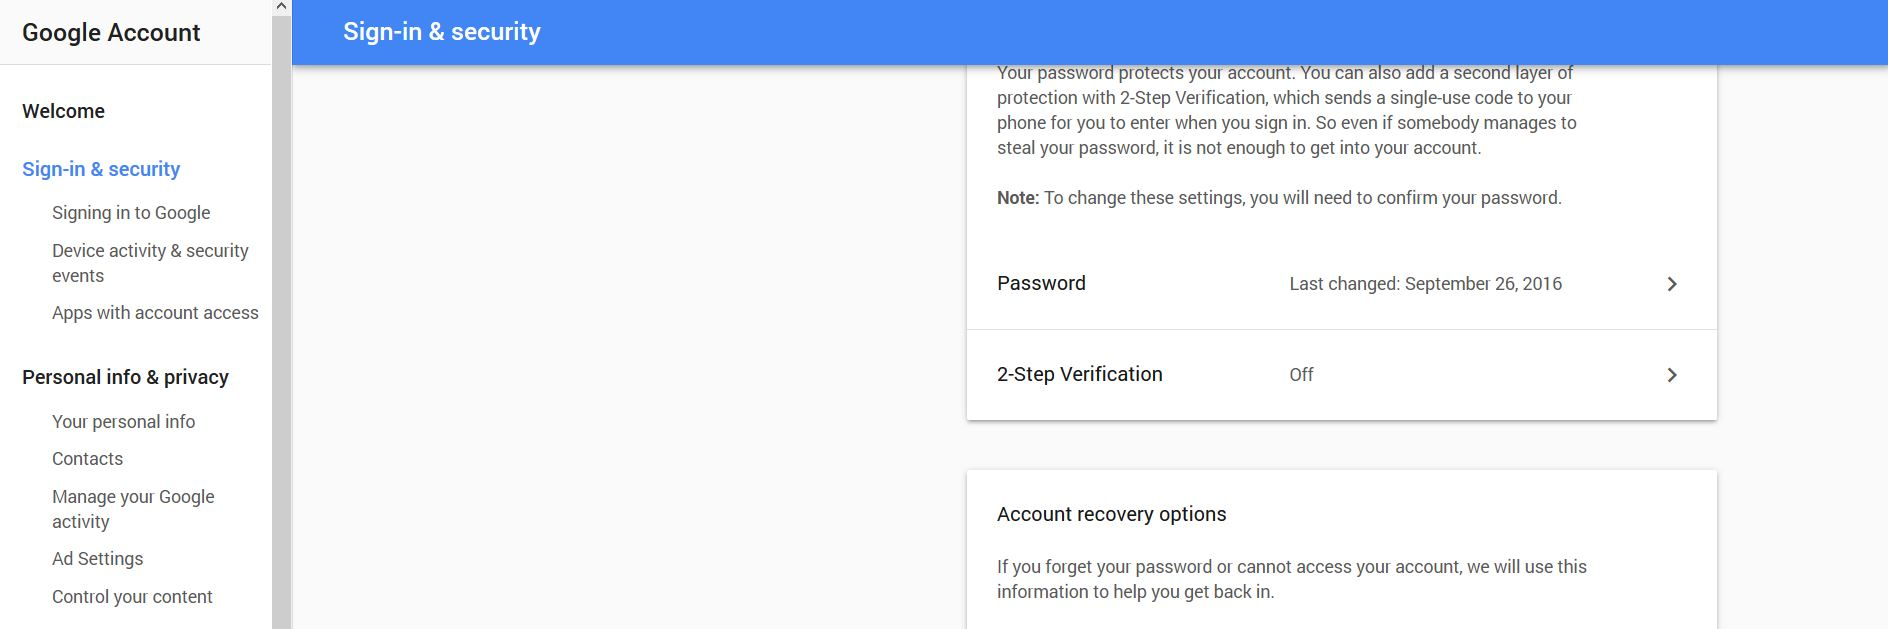 Gmail Security Settings - Reach Absolute